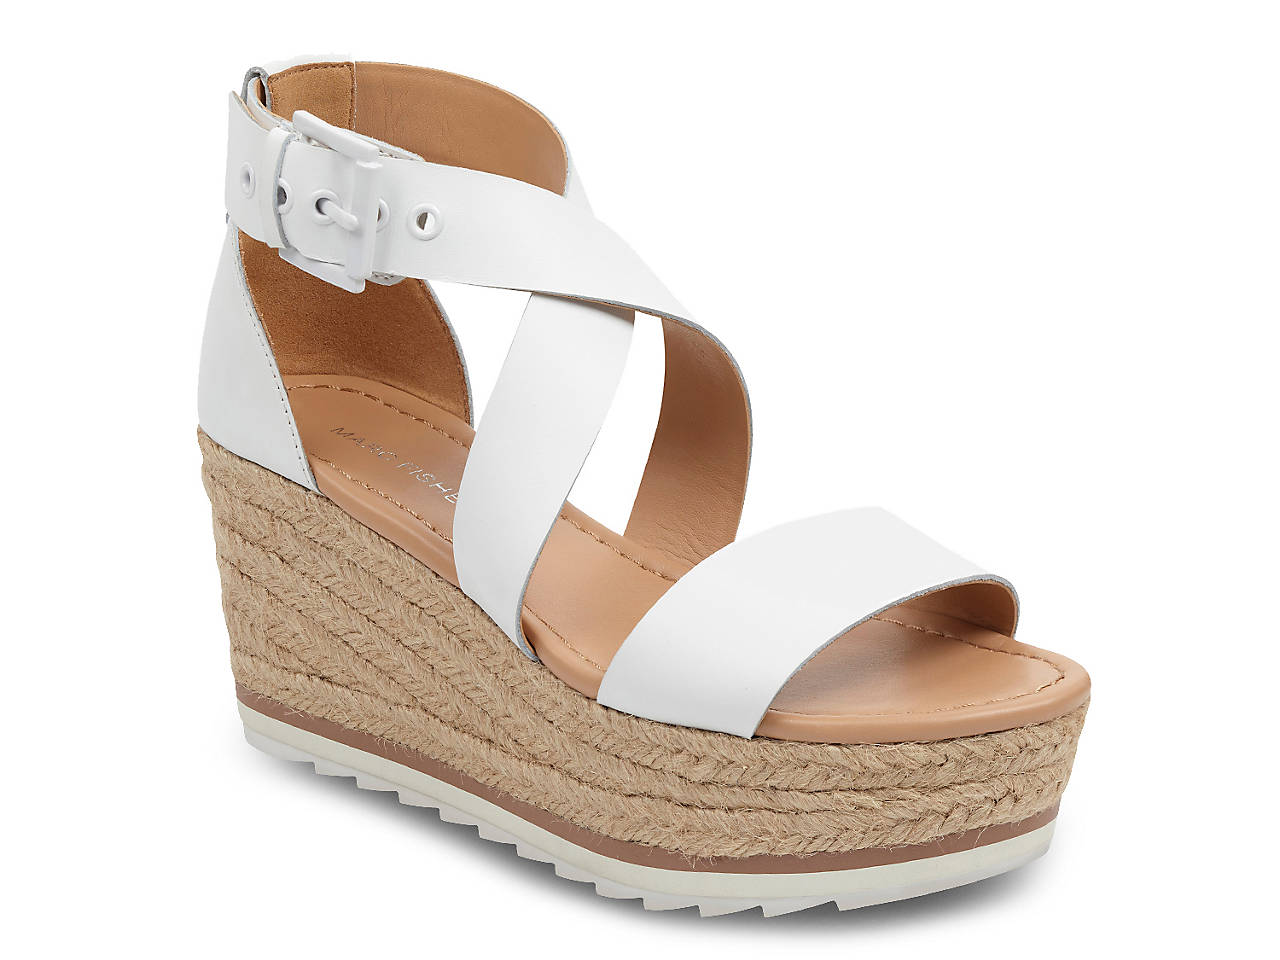 01fd0f03c8 Marc Fisher Zaide Espadrille Wedge Sandal Women's Shoes | DSW